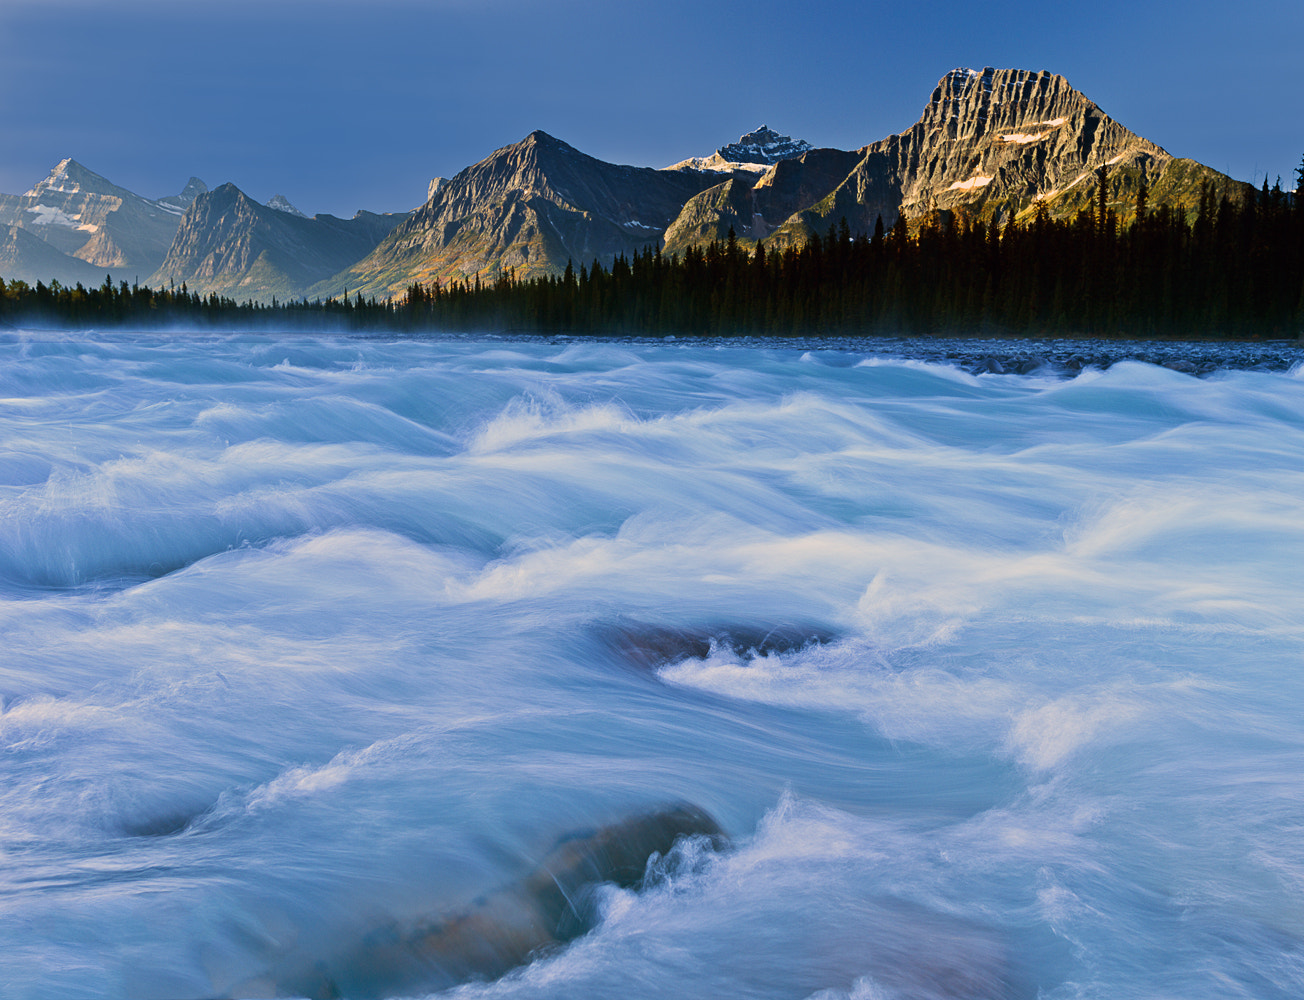 Photograph Athabasca River,Jasper National Park by William - Jeff Thomas on 500px